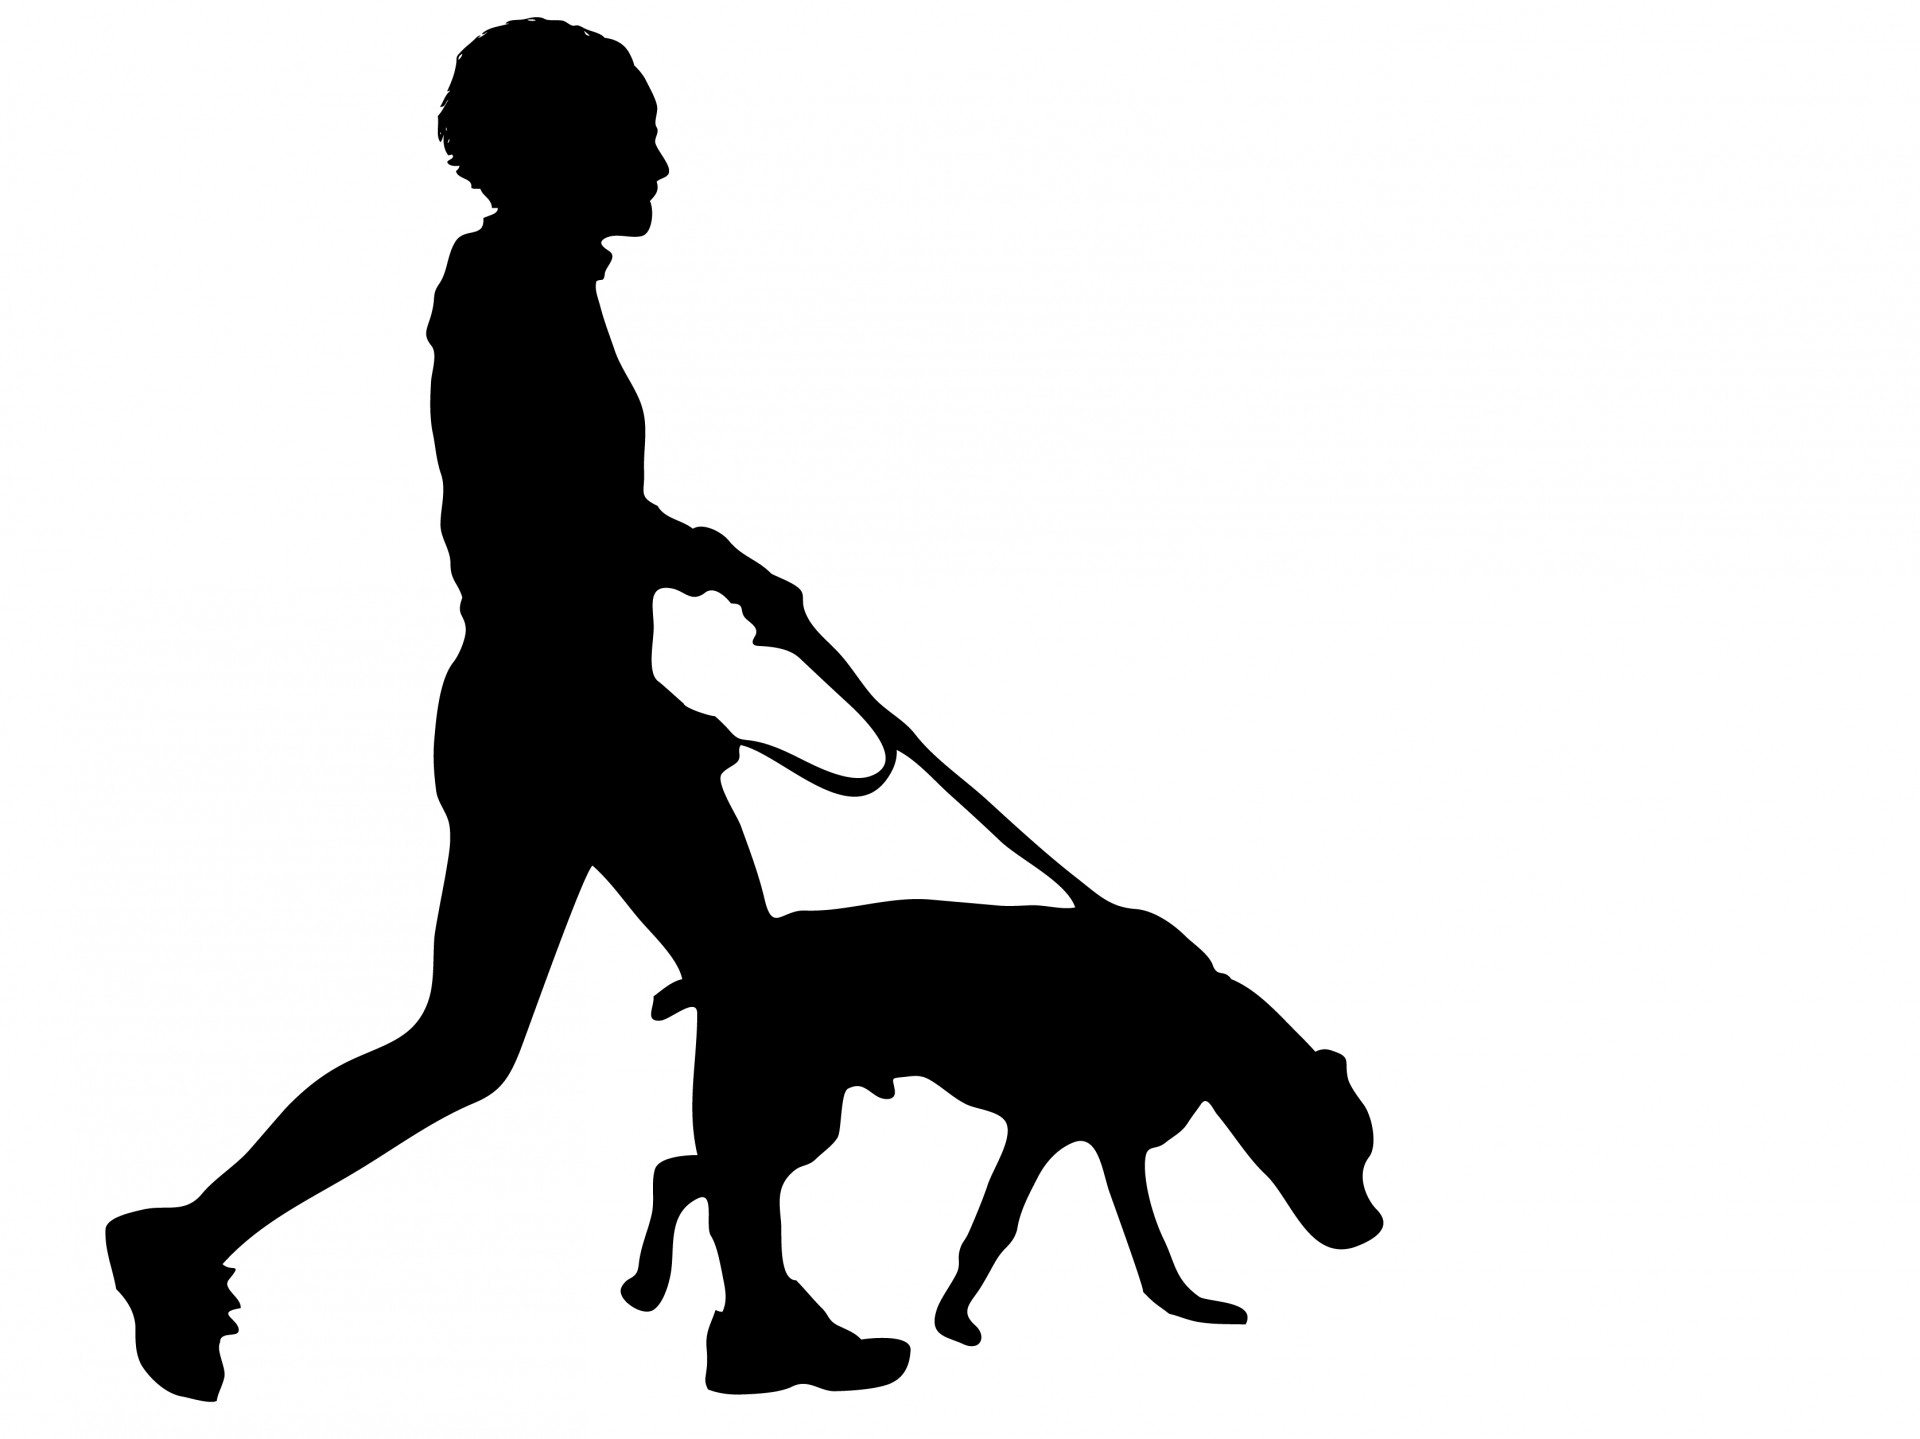 Dog Walking Zhy | Free Images at Clker.com - vector clip ...